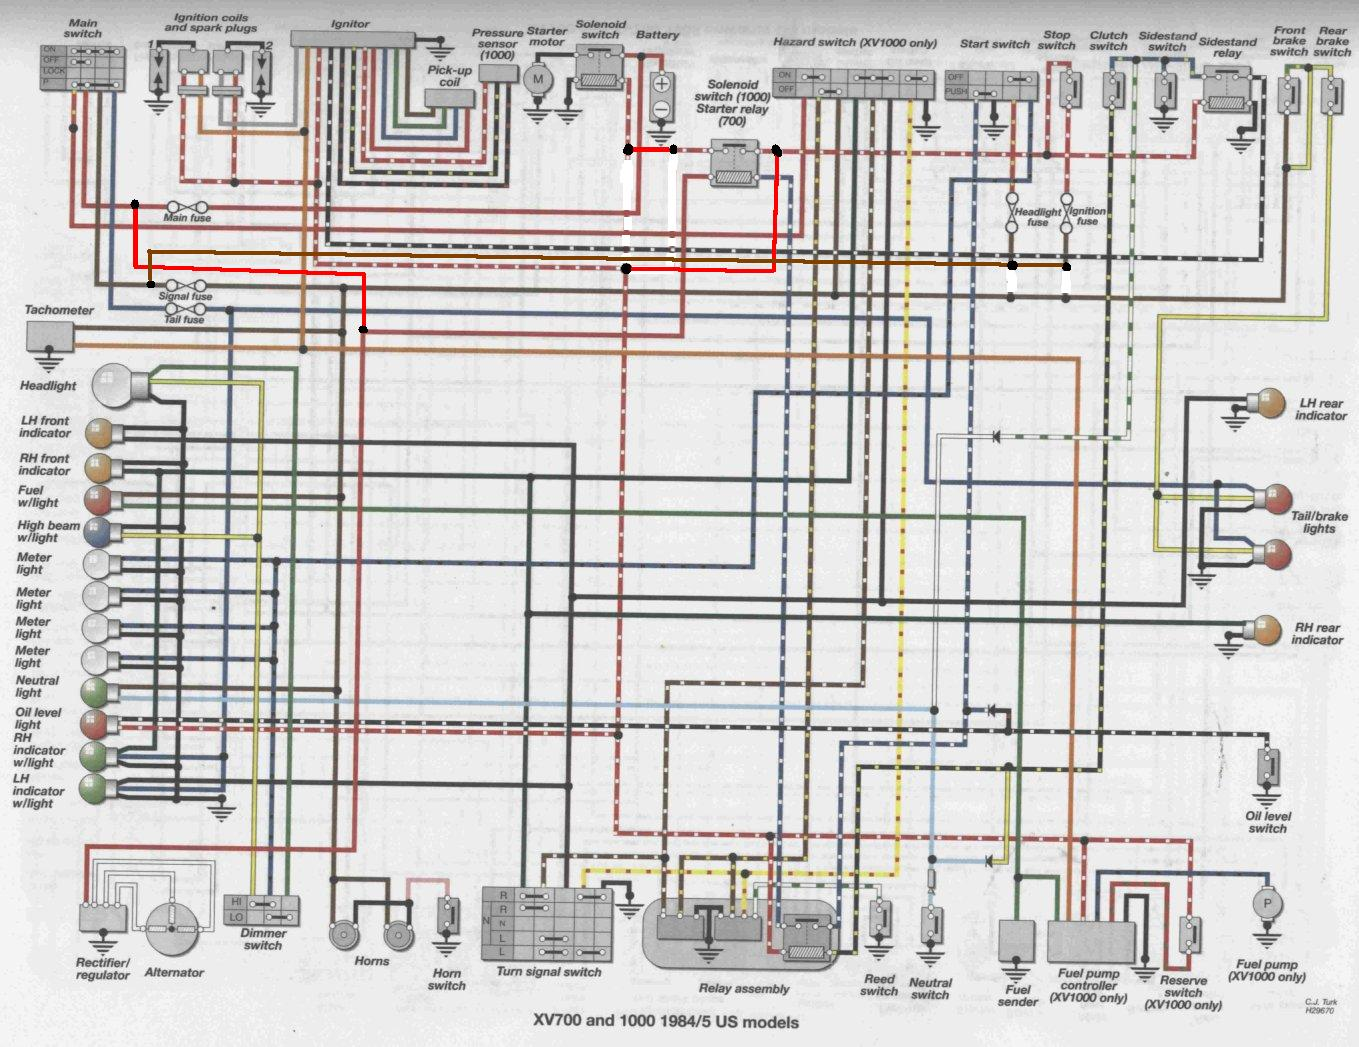 84_85_FIXED_XV700_XV1000 Xv Wiring Diagram on motor diagrams, electronic circuit diagrams, hvac diagrams, transformer diagrams, pinout diagrams, smart car diagrams, engine diagrams, honda motorcycle repair diagrams, sincgars radio configurations diagrams, gmc fuse box diagrams, lighting diagrams, series and parallel circuits diagrams, battery diagrams, electrical diagrams, led circuit diagrams, switch diagrams, friendship bracelet diagrams, internet of things diagrams, troubleshooting diagrams,